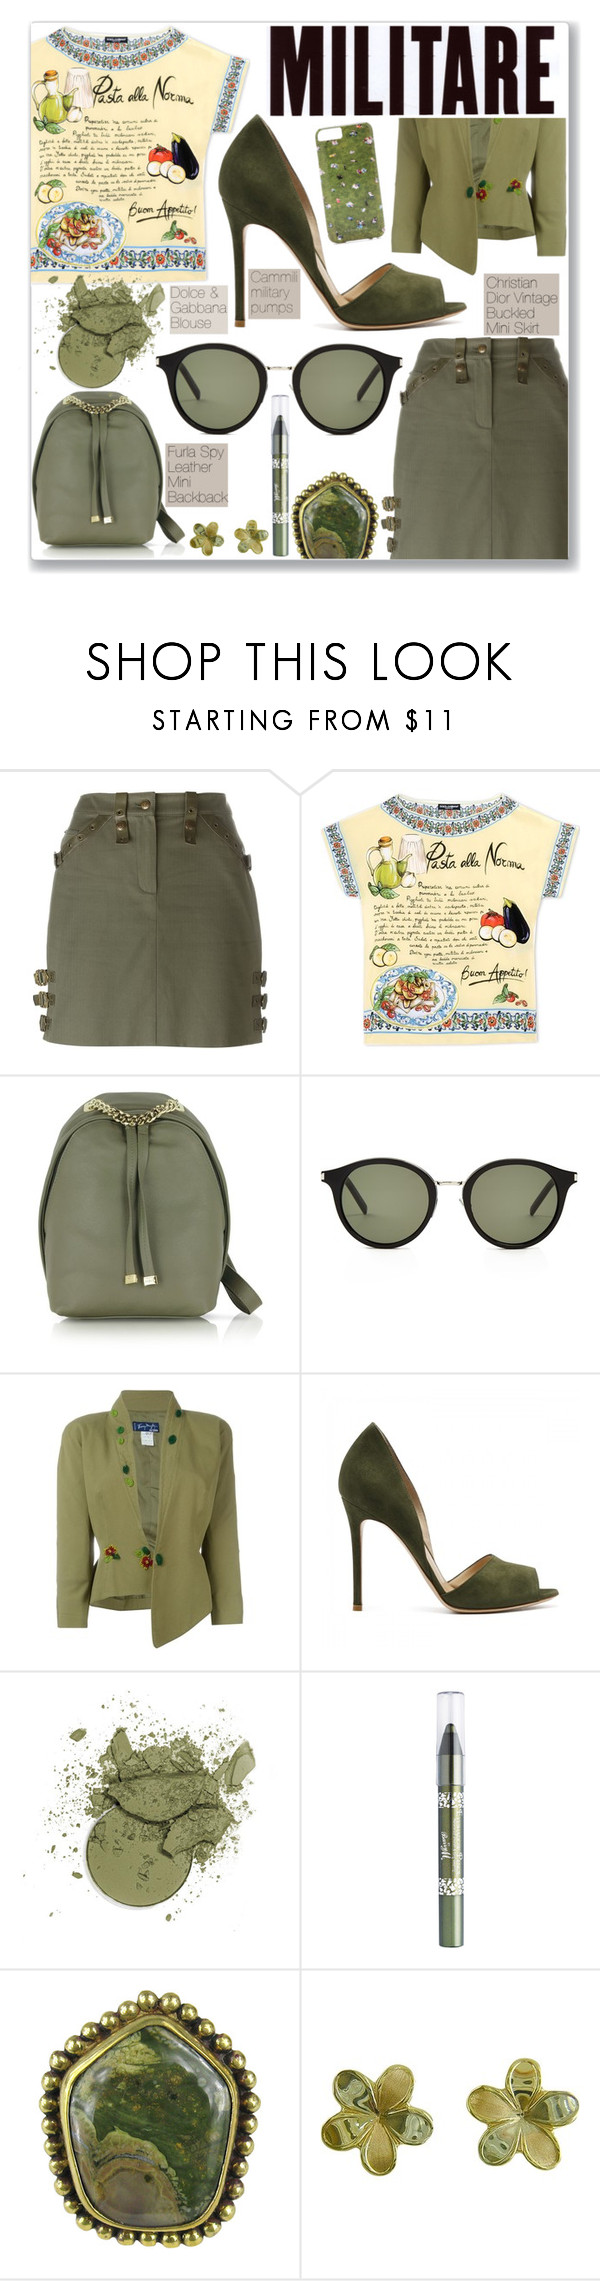 """""""In British They Might Say M-i-l-i-tree"""" by rivlyb ❤ liked on Polyvore featuring Christian Dior, Dolce&Gabbana, Furla, Yves Saint Laurent, Thierry Mugler, Barry M, Stephen Dweck, Lord & Taylor and Gray Malin"""